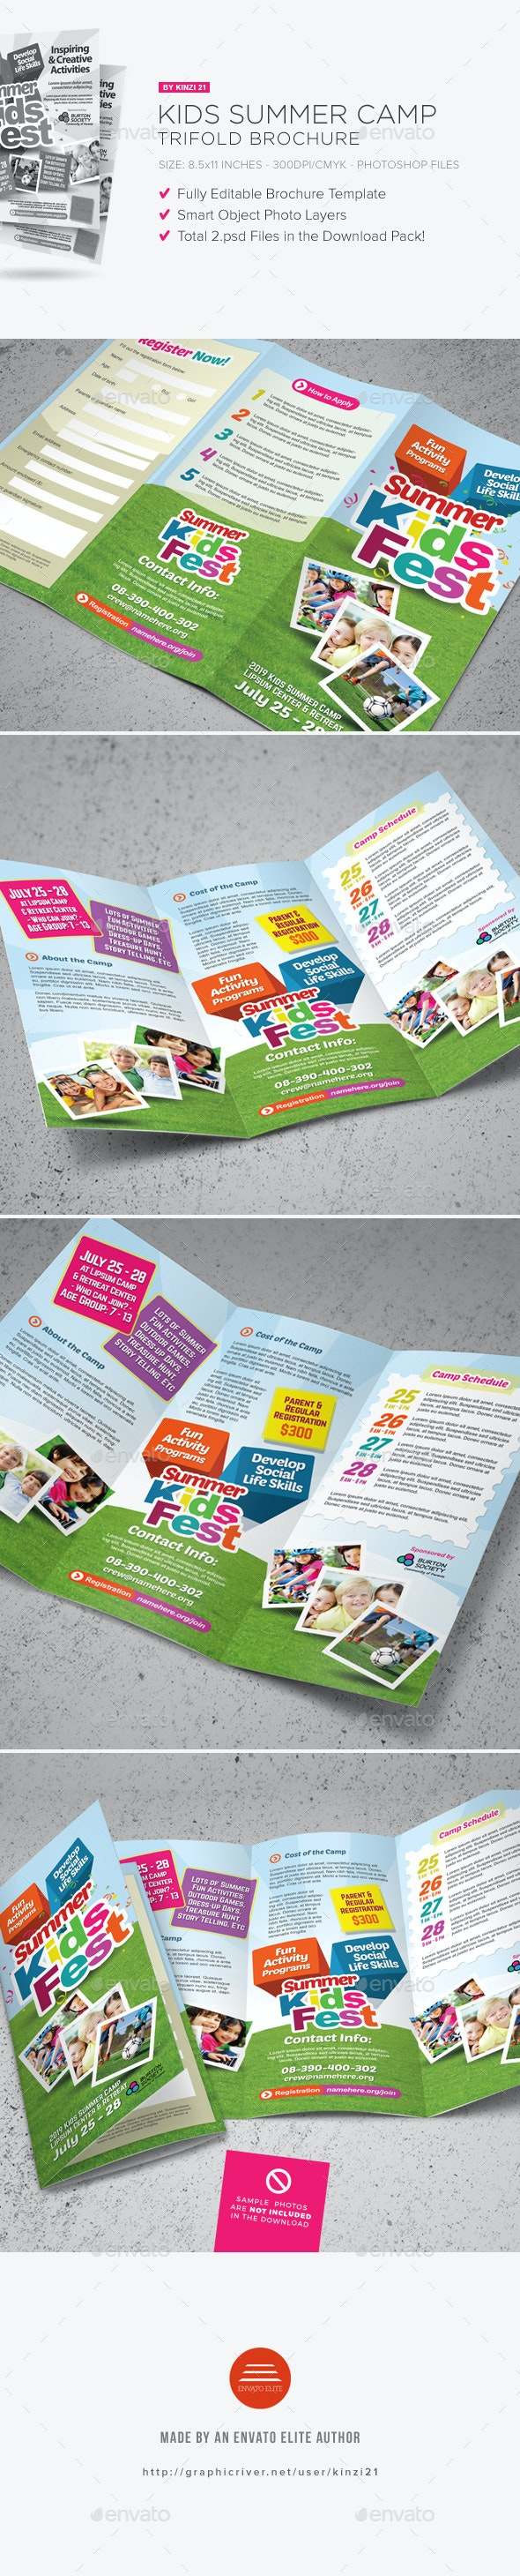 Kids Summer Camp Trifold Brochure - Corporate Brochures